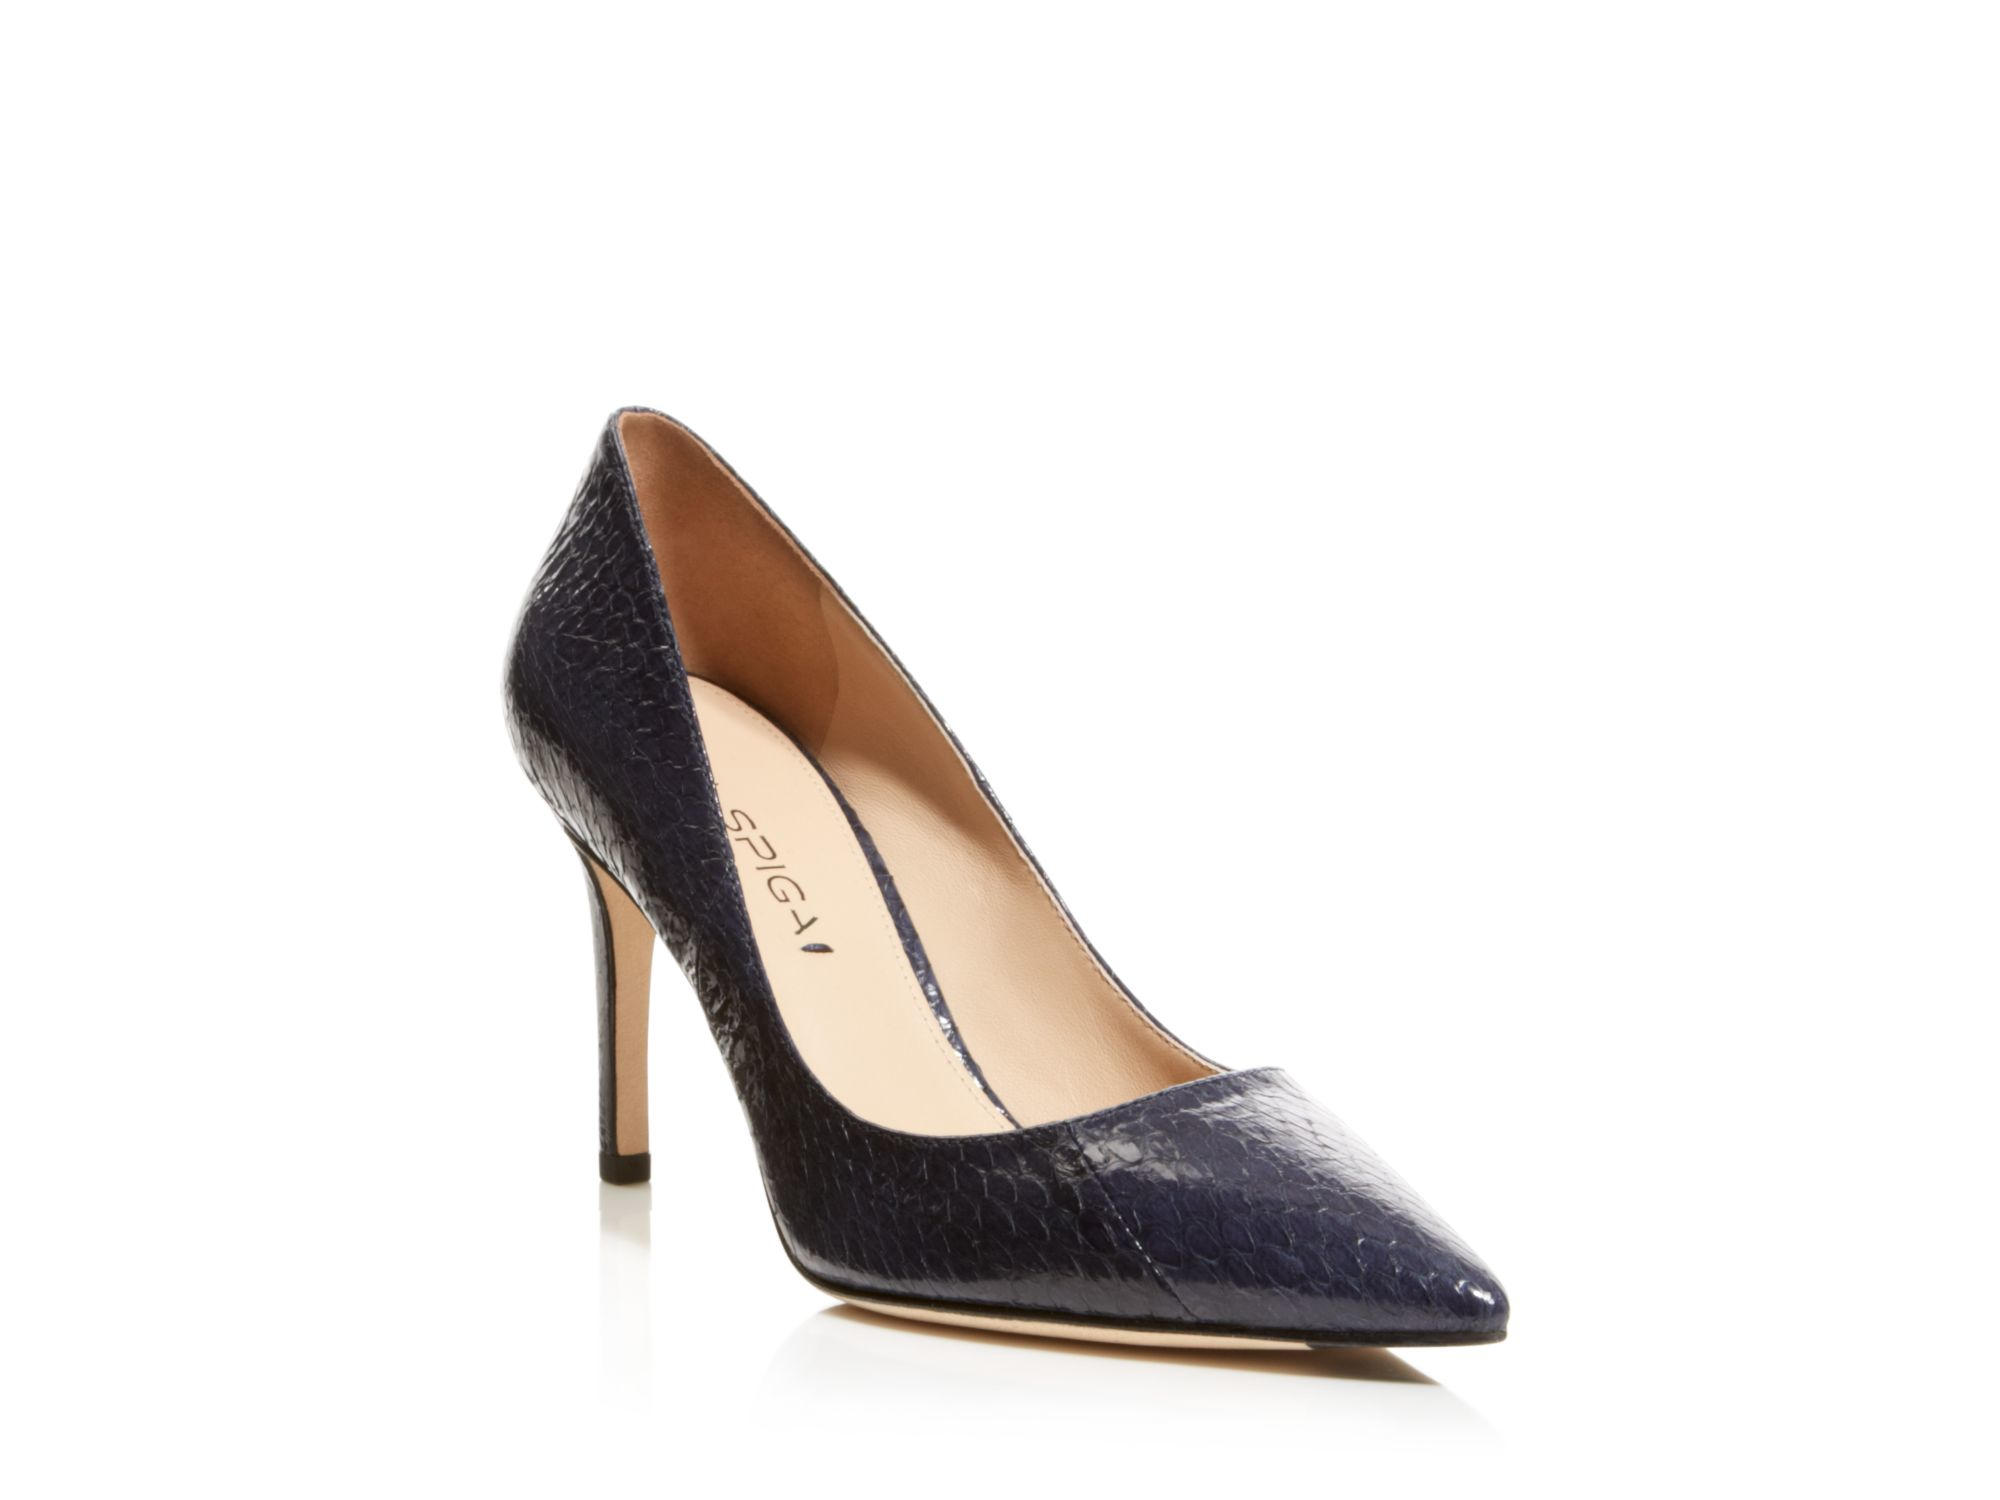 Via Spiga Pointed Toe Pumps Carola Snakeskin High Heel